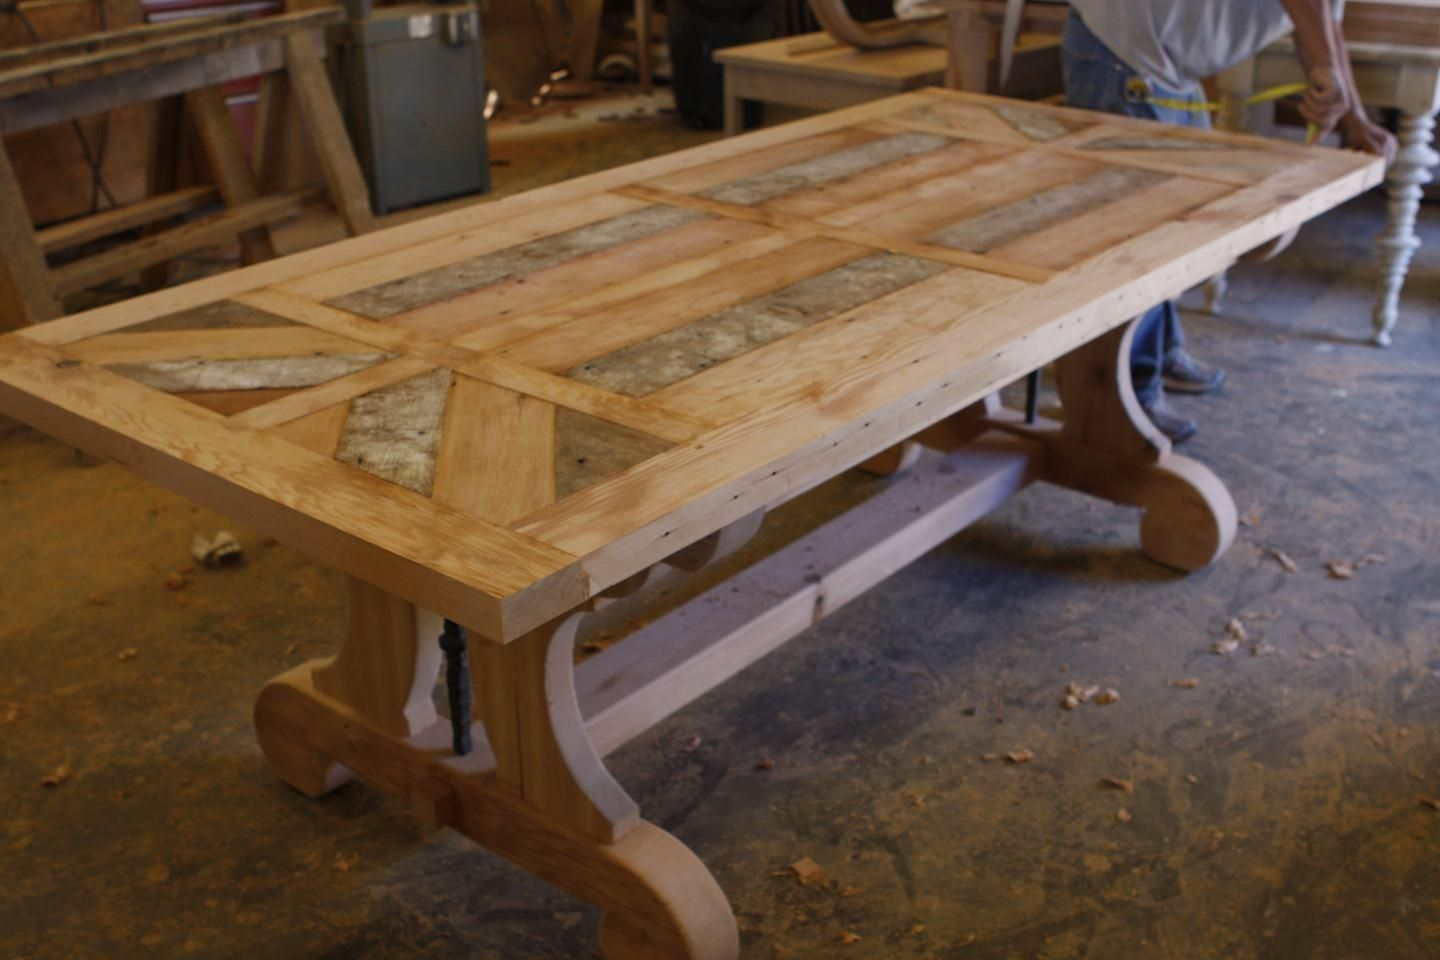 custom kitchen tables Custom Trestle Dining Table With Leaf Extensions Built In Reclaimed Wood